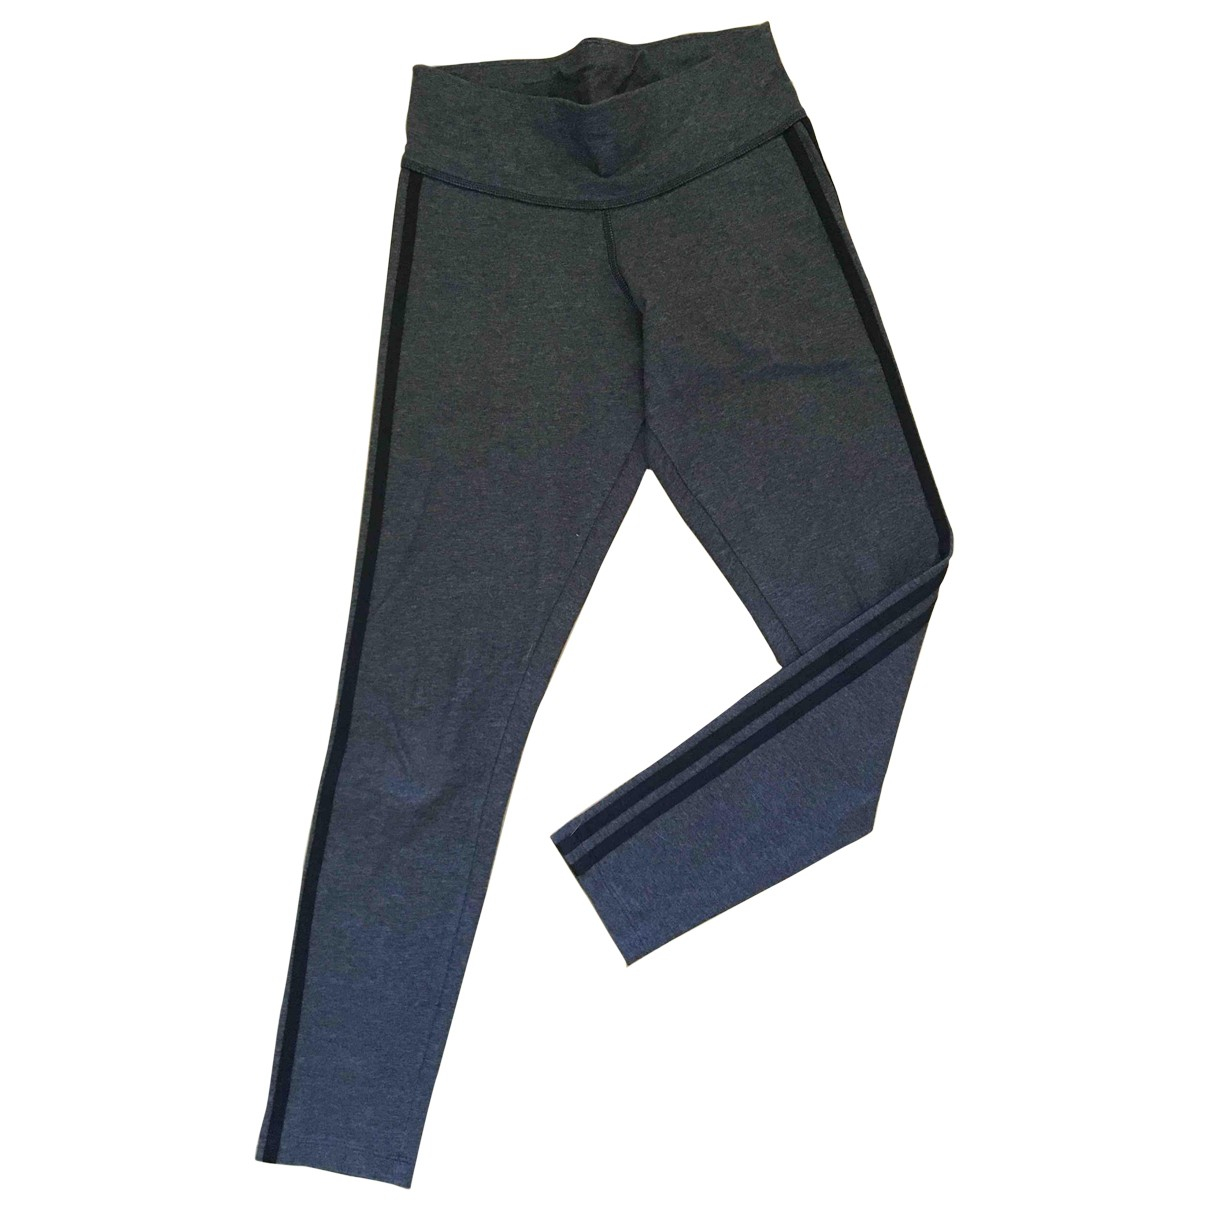 Adidas \N Anthracite Cotton Trousers for Women S International